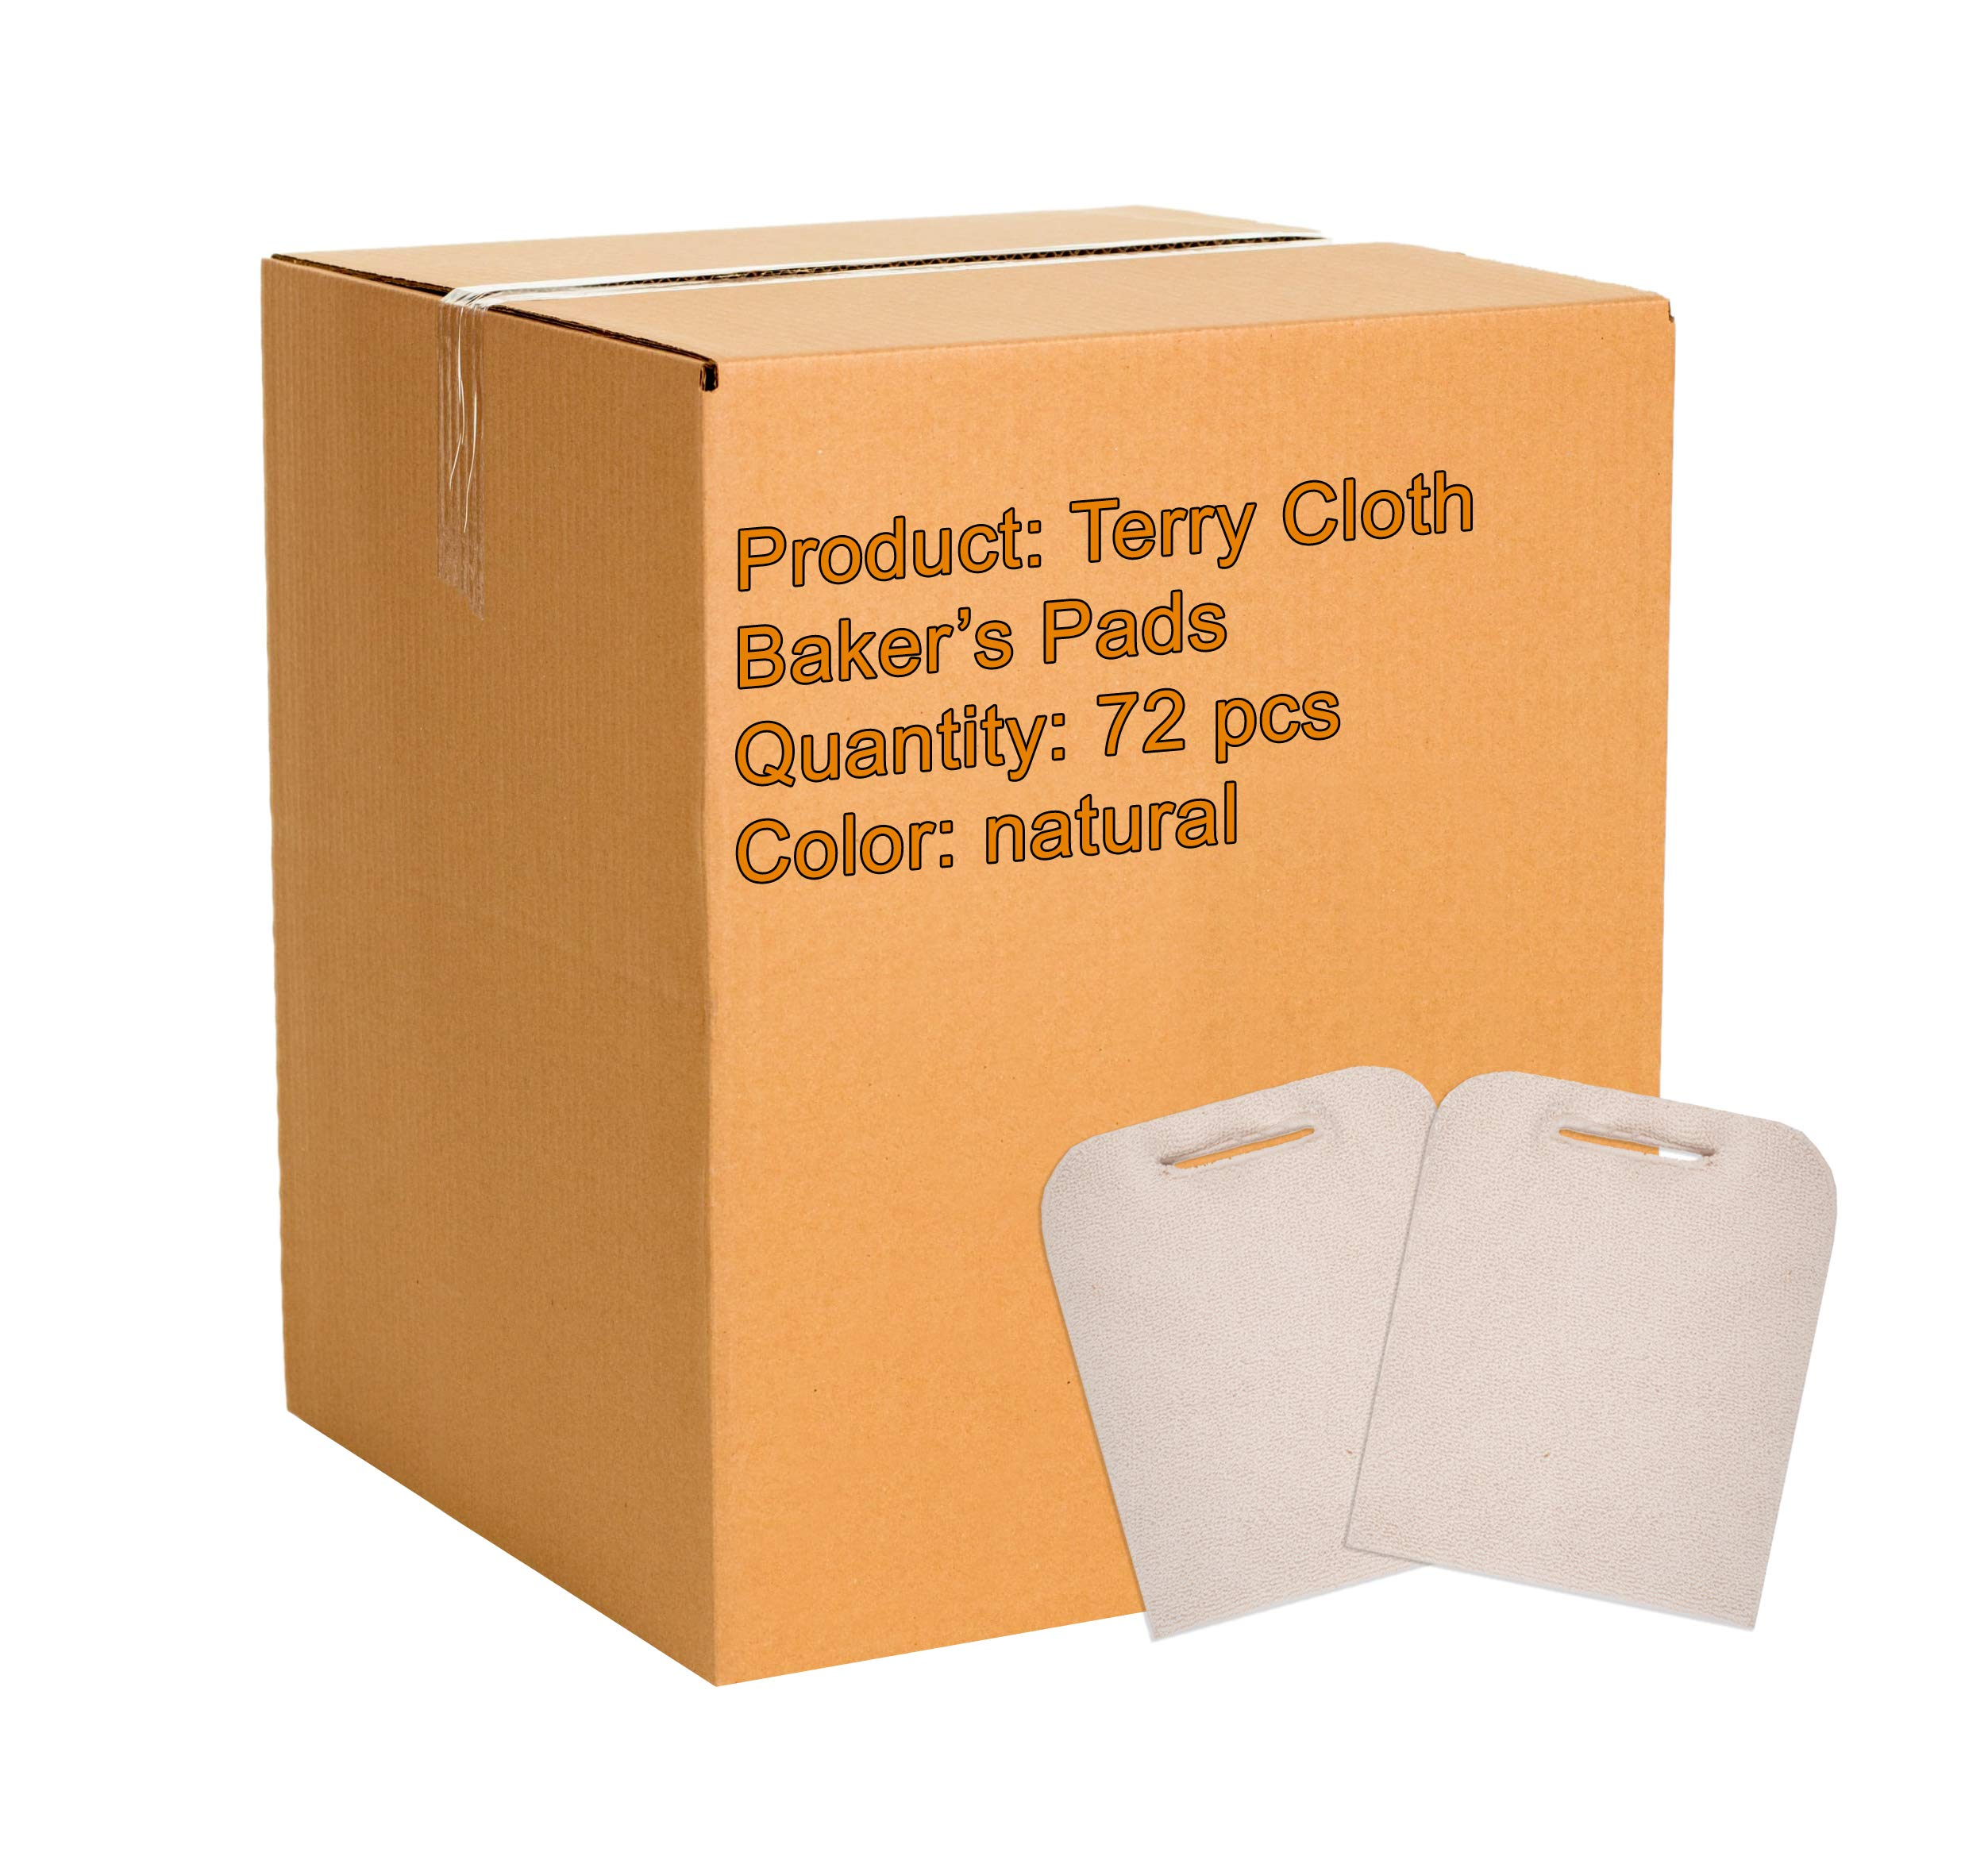 ABC 72 Pack Terry Cloth Baker's Pads. Industrial Oven Pads for Heat Protection. Pot Holders with Hand Hole. Heat Resistant Knitted Pads for Baking, Cooking Needs. Natural Color. One Size fits All. by ABC Pack & Supply